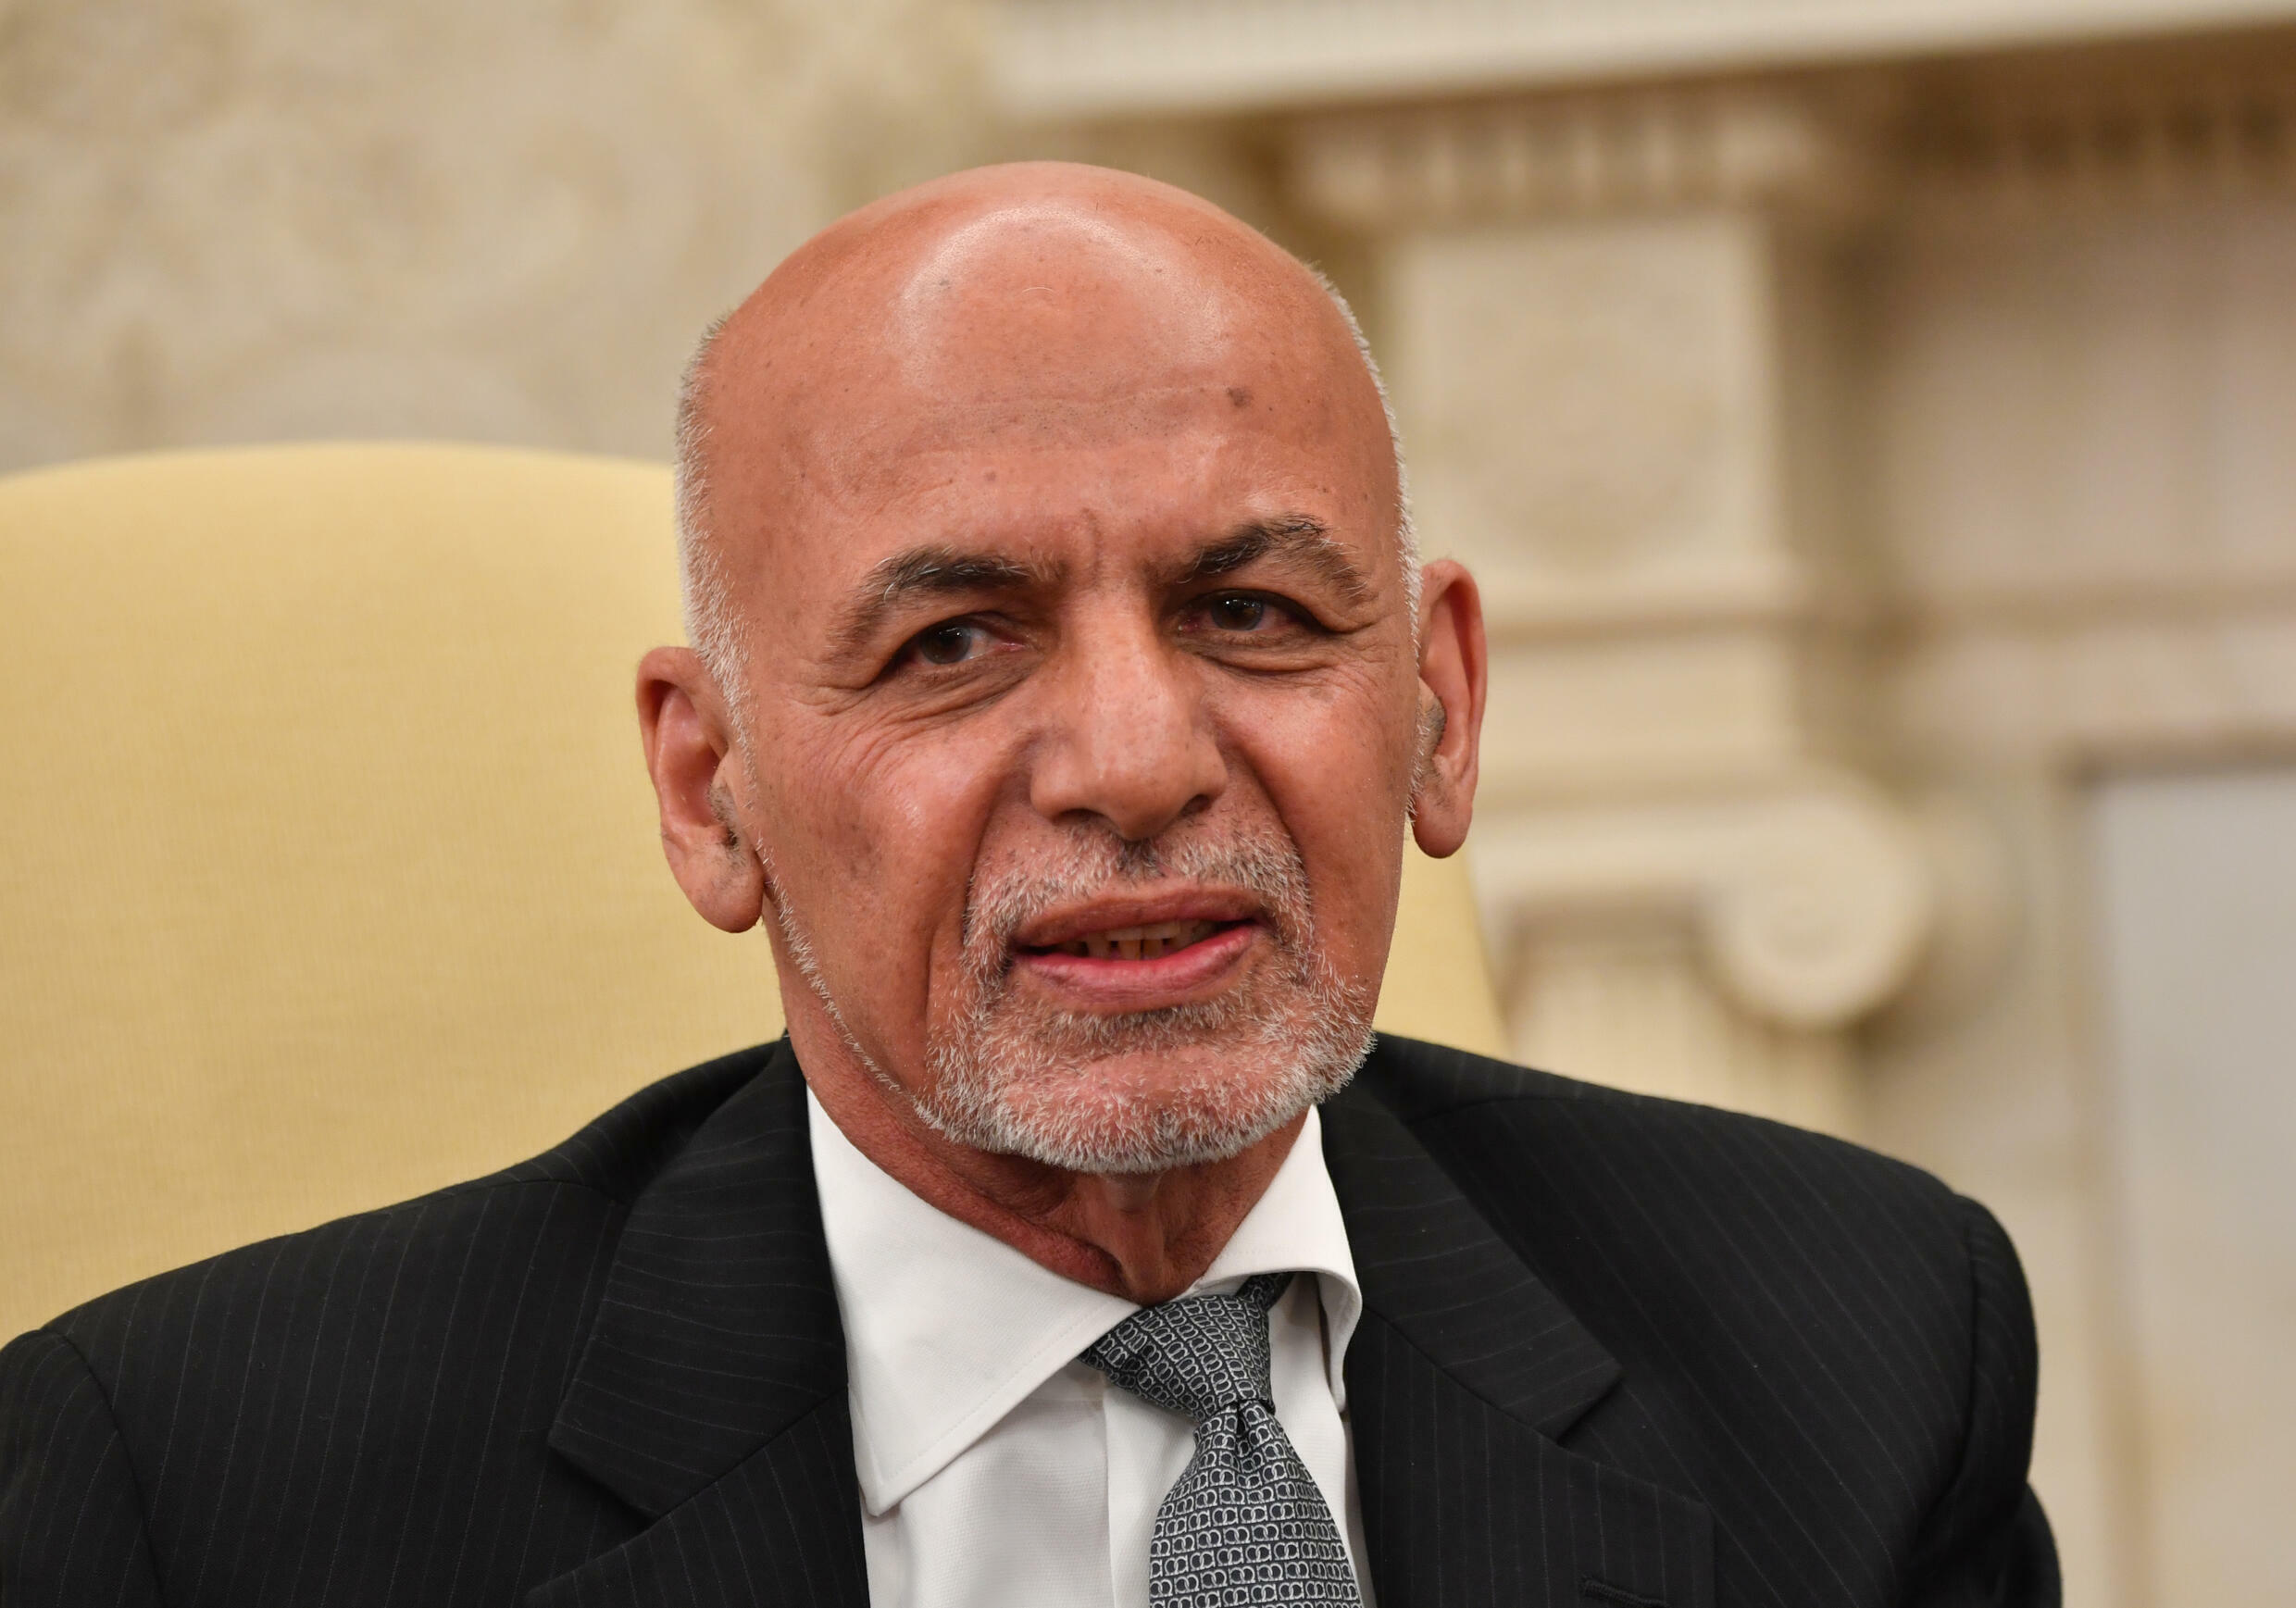 Ashraf Ghani speaks during a meeting with US President Joe Biden at the White House in this file picture taken on June 25, 2021